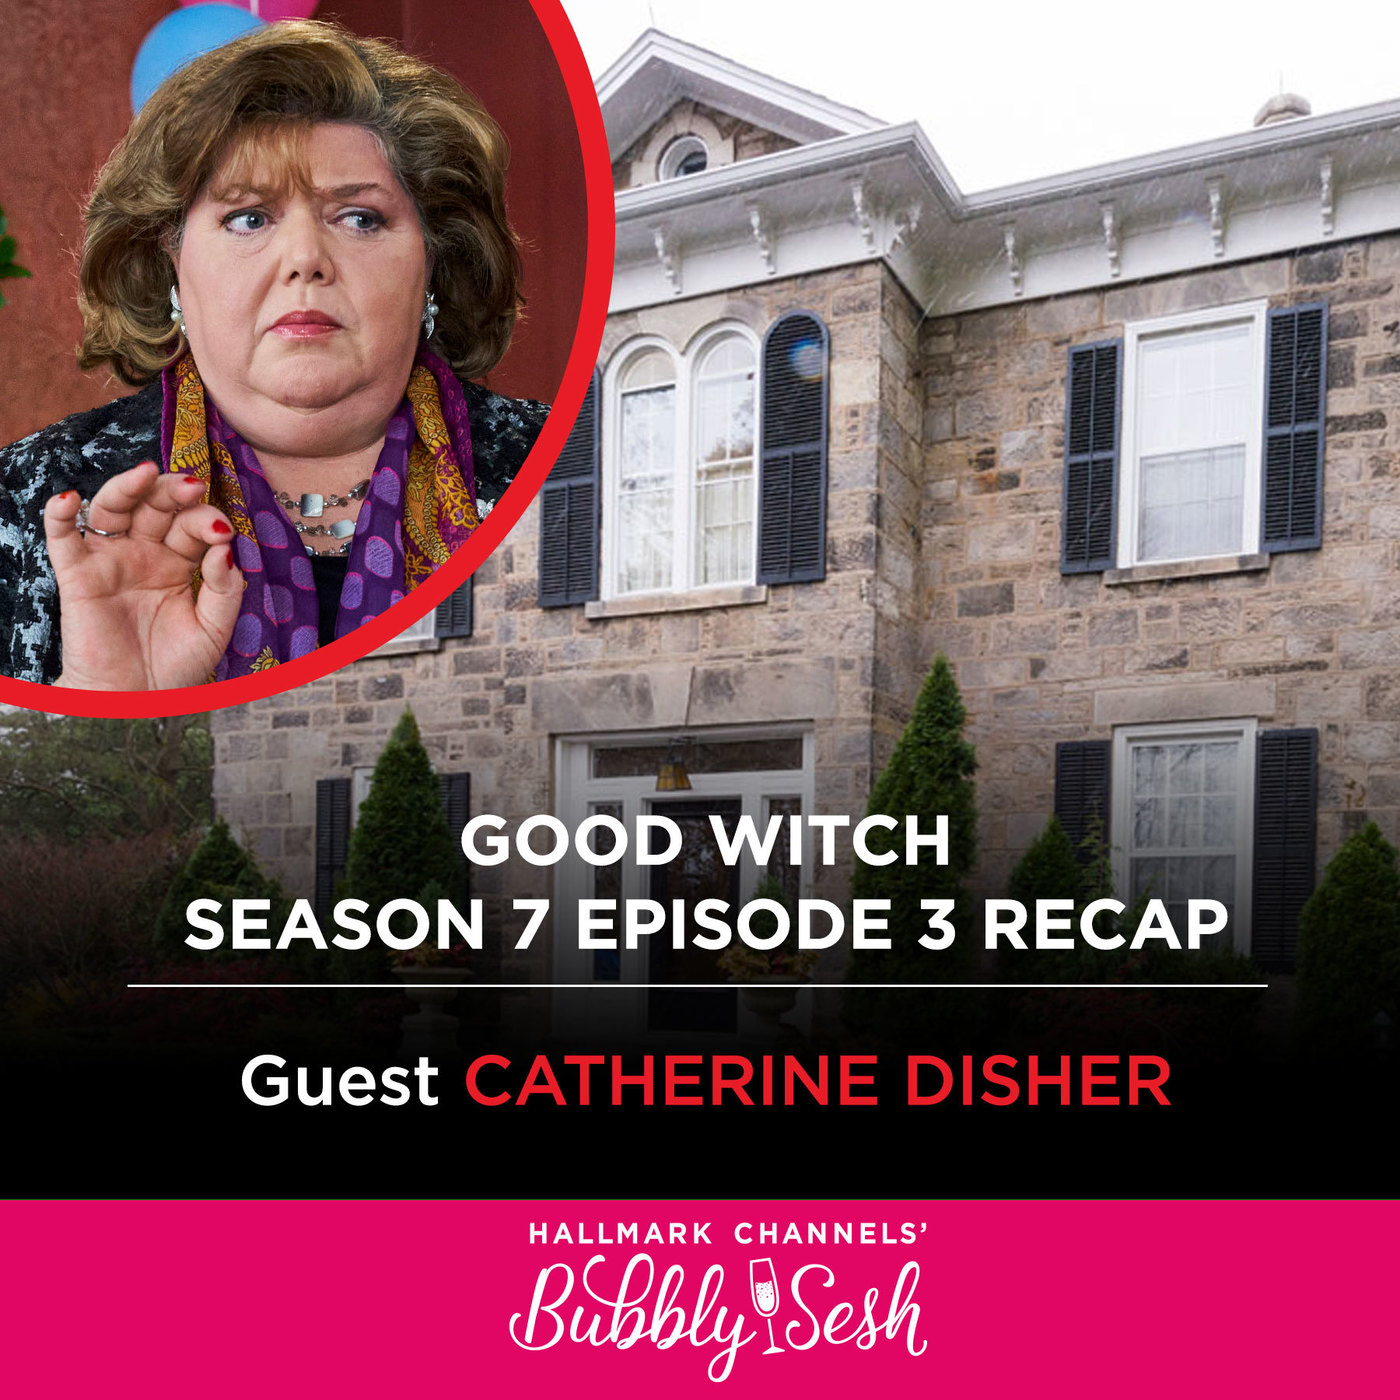 Good Witch Season 7 Episode 3 Recap with Guest Catherine Disher